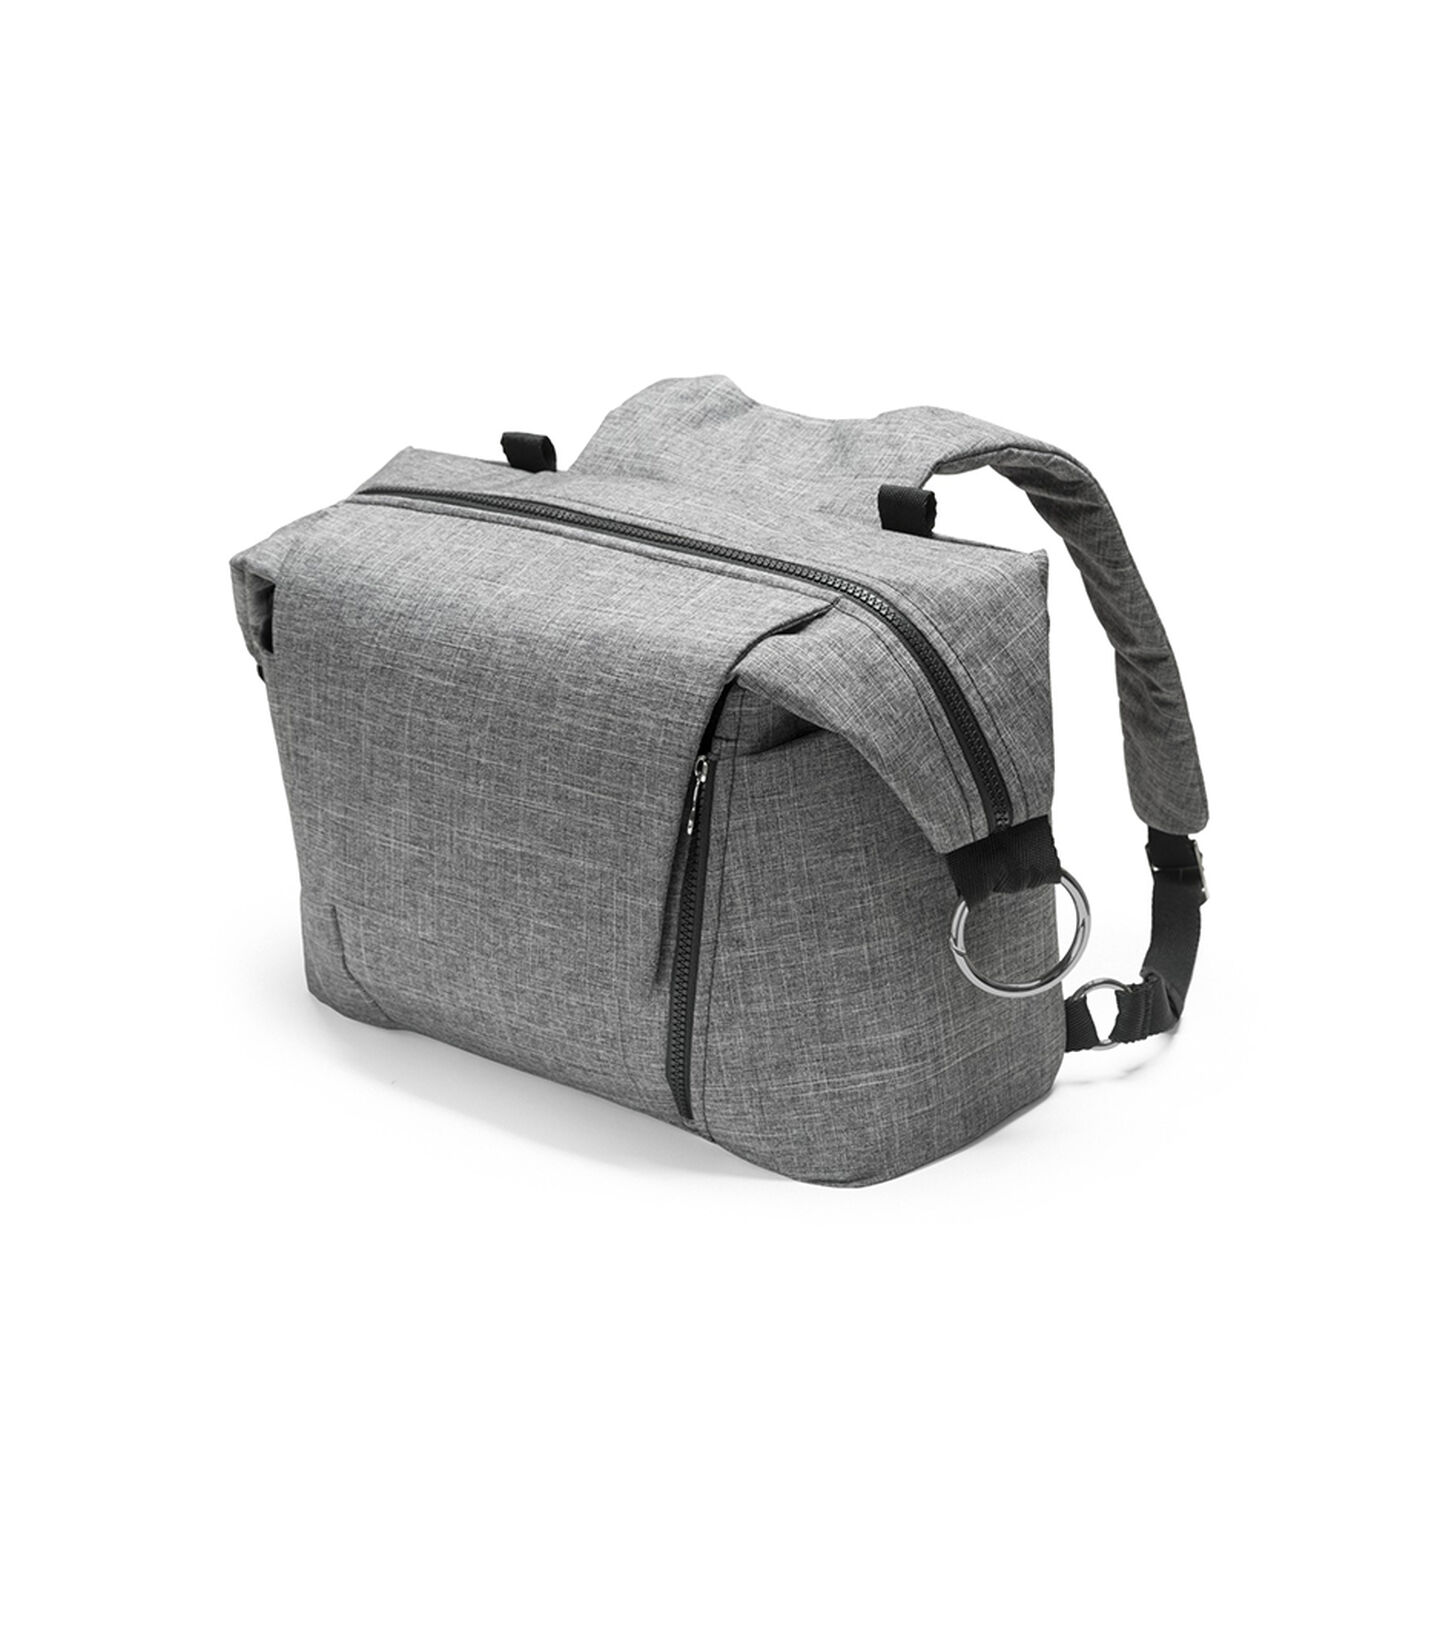 Stokke® Changing Bag Black Melange, Black Melange, mainview view 2